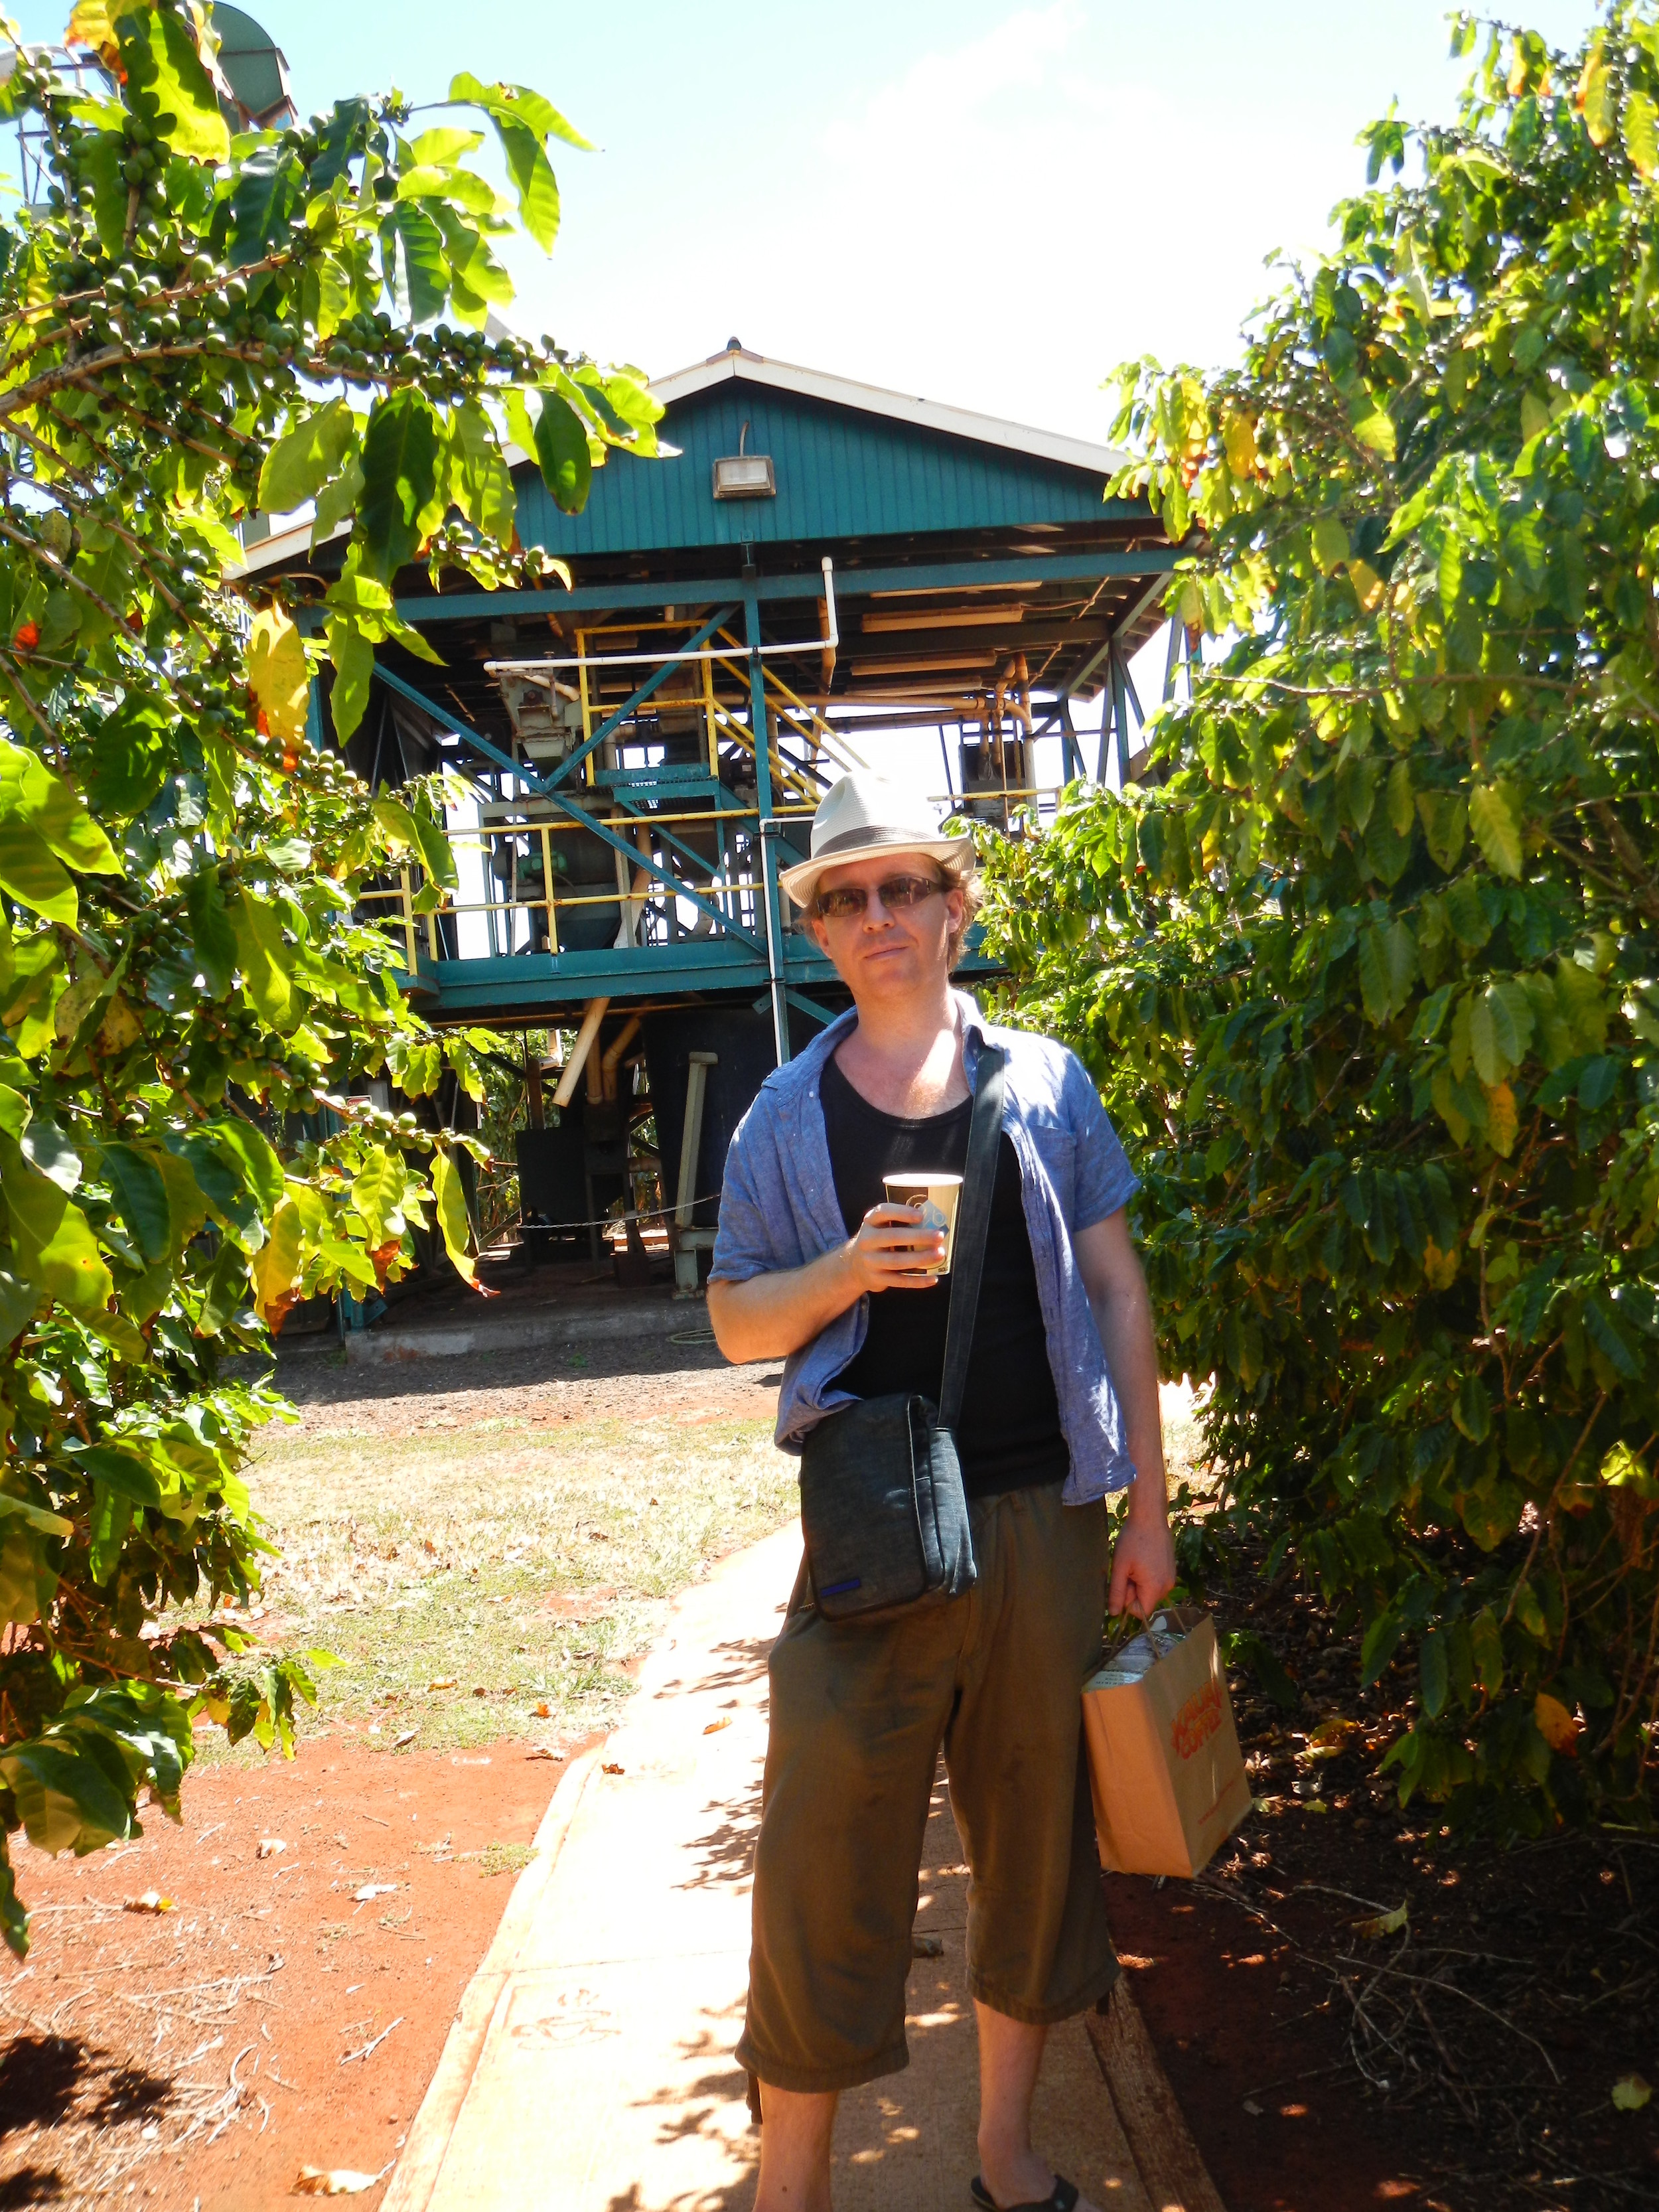 Kauai Coffee Plantation. Great coffee but not much caffeine. I mix my Kauai beans with other beans for that morning kick.